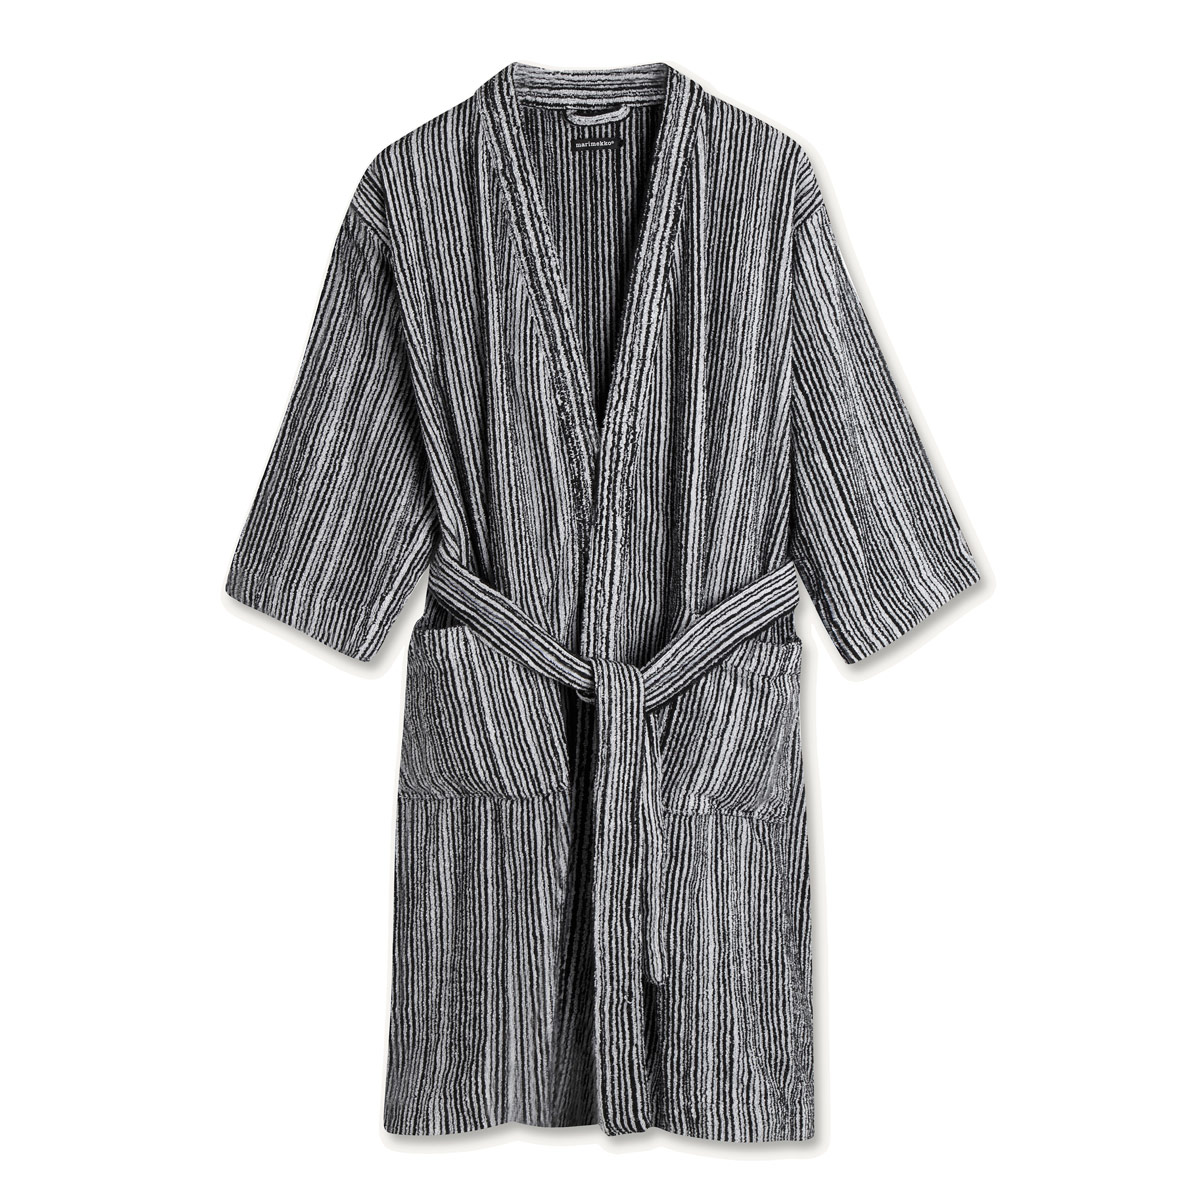 Overstock uses cookies to ensure you get the best experience on our site. If you continue on our site, you consent to the use of such cookies. Learn Authentic Hotel and Spa White Unisex Turkish Cotton Waffle Weave Terry Bath Robe with Black Script Monogram. More Options.